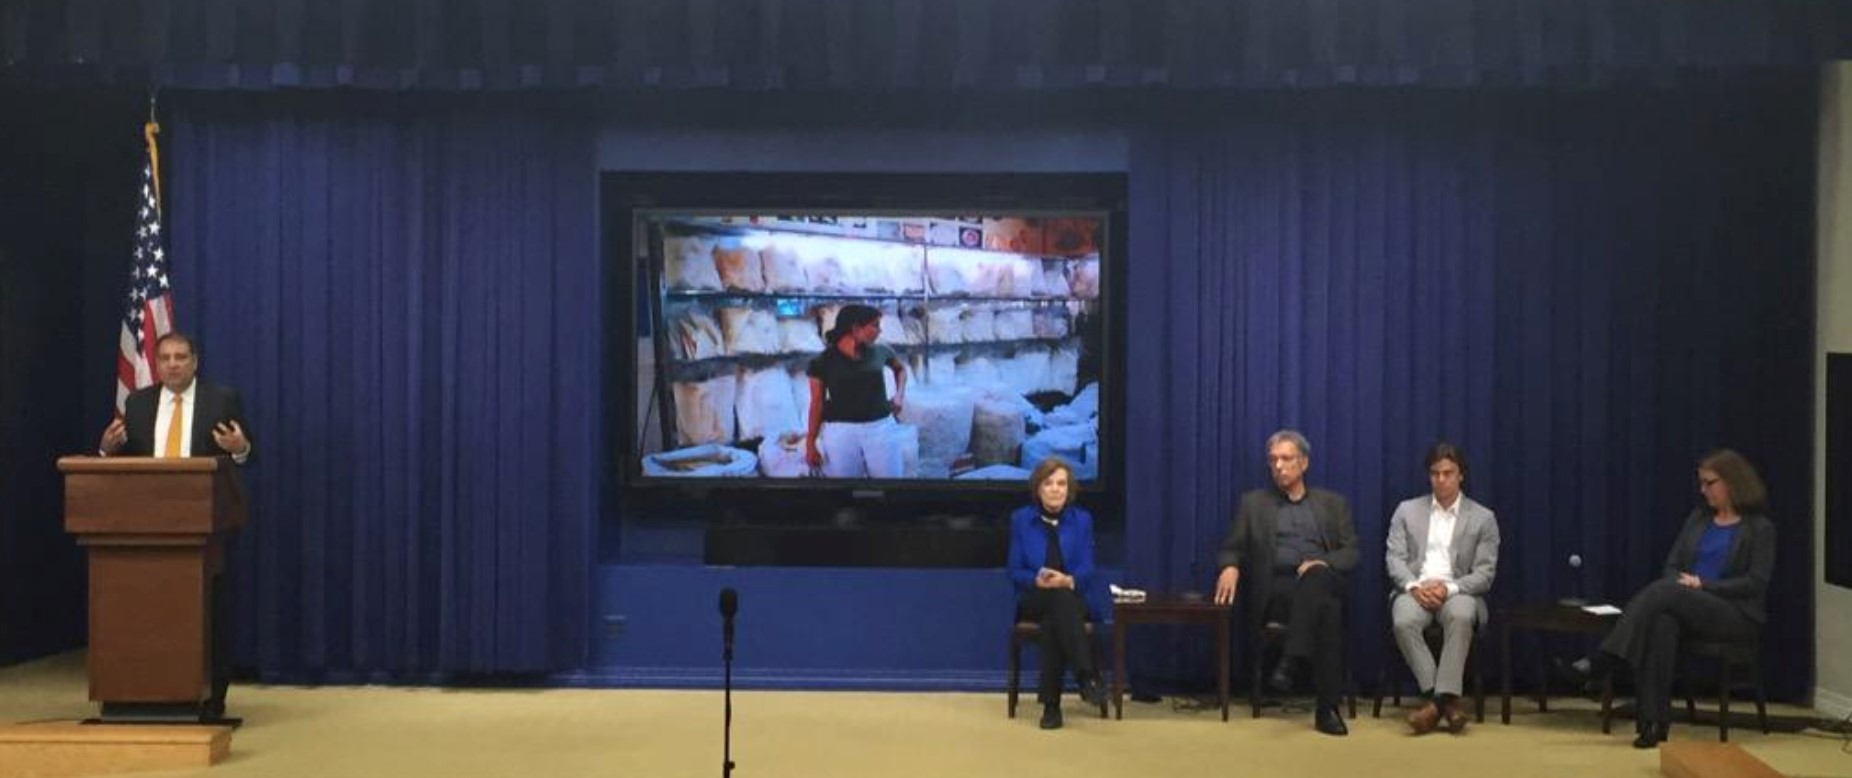 Dr. Daniel Pauly at a White House event on citizen science.